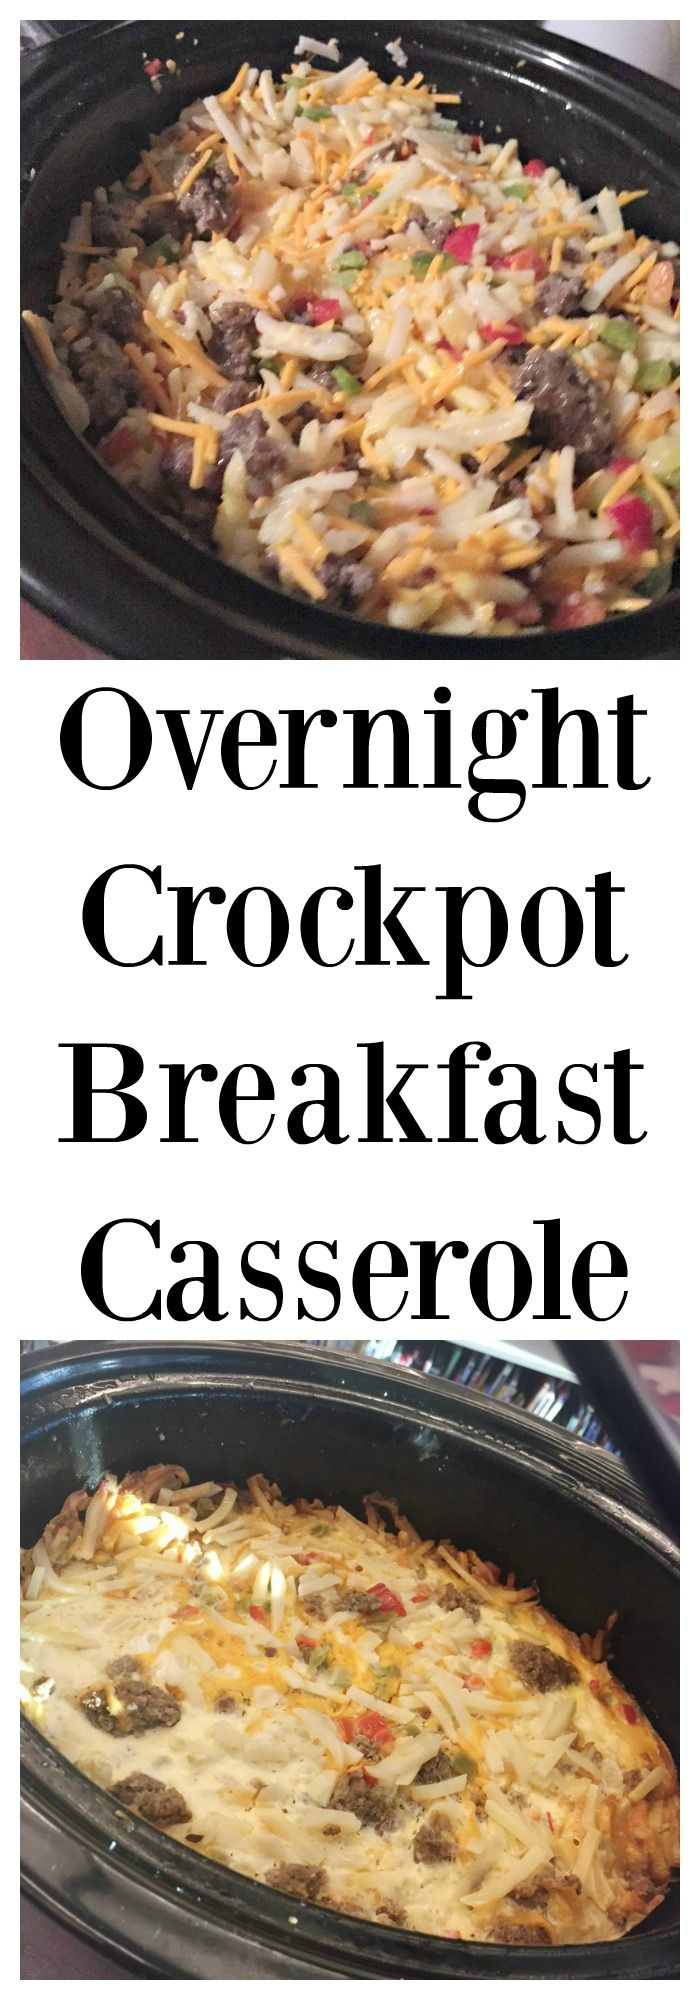 This Crockpot Breakfast Casserole is the perfect dish to make for holidays or weekends! It's easy and delicious!